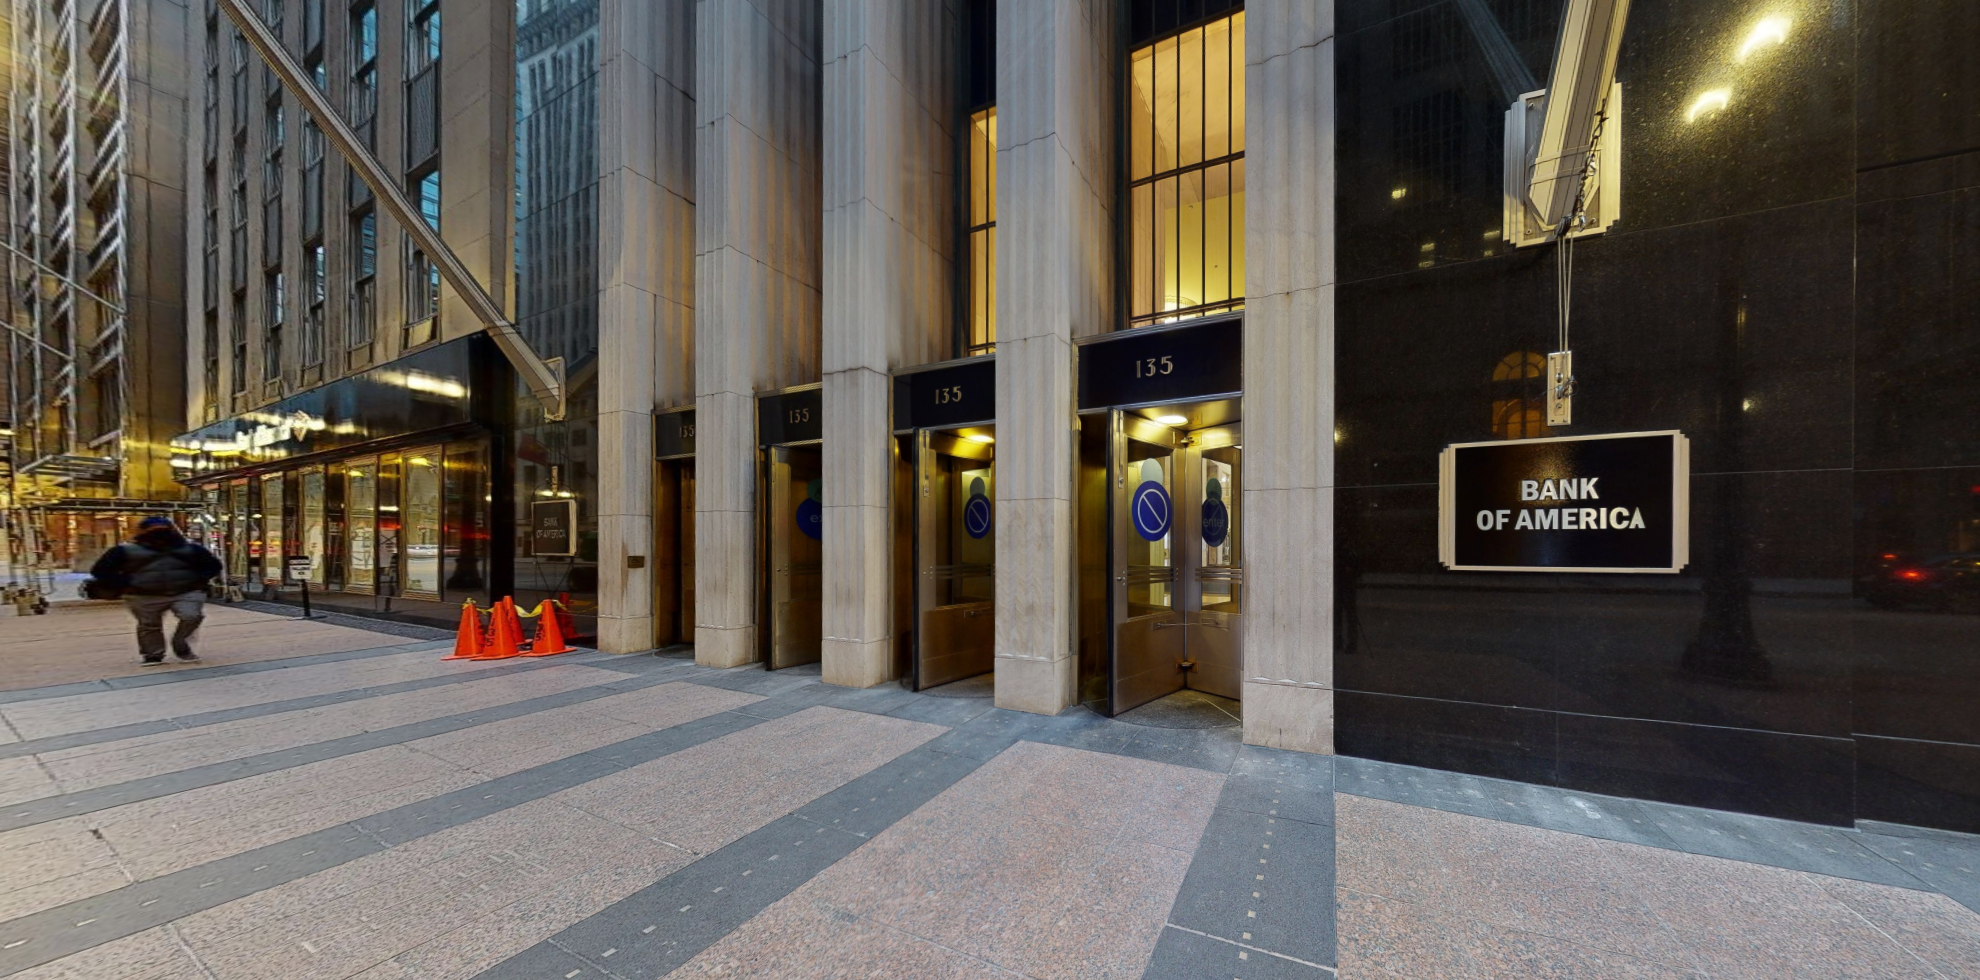 Bank of America financial center with walk-up ATM   135 S La Salle St STE LL18, Chicago, IL 60603